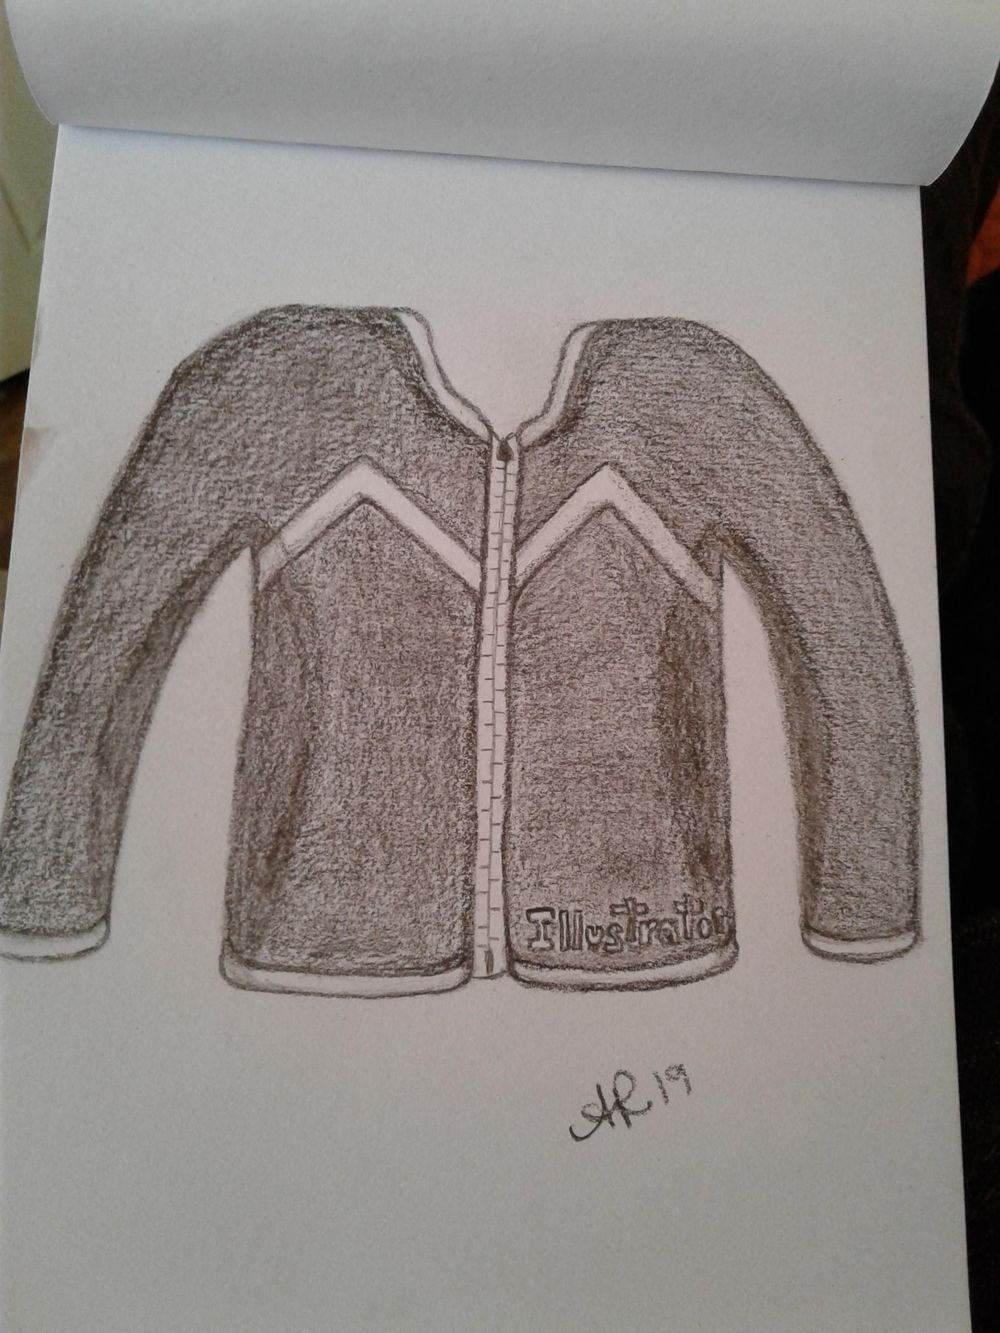 My dream!  I was wearing this black jacket with the word Illustrator. - image 1 - student project